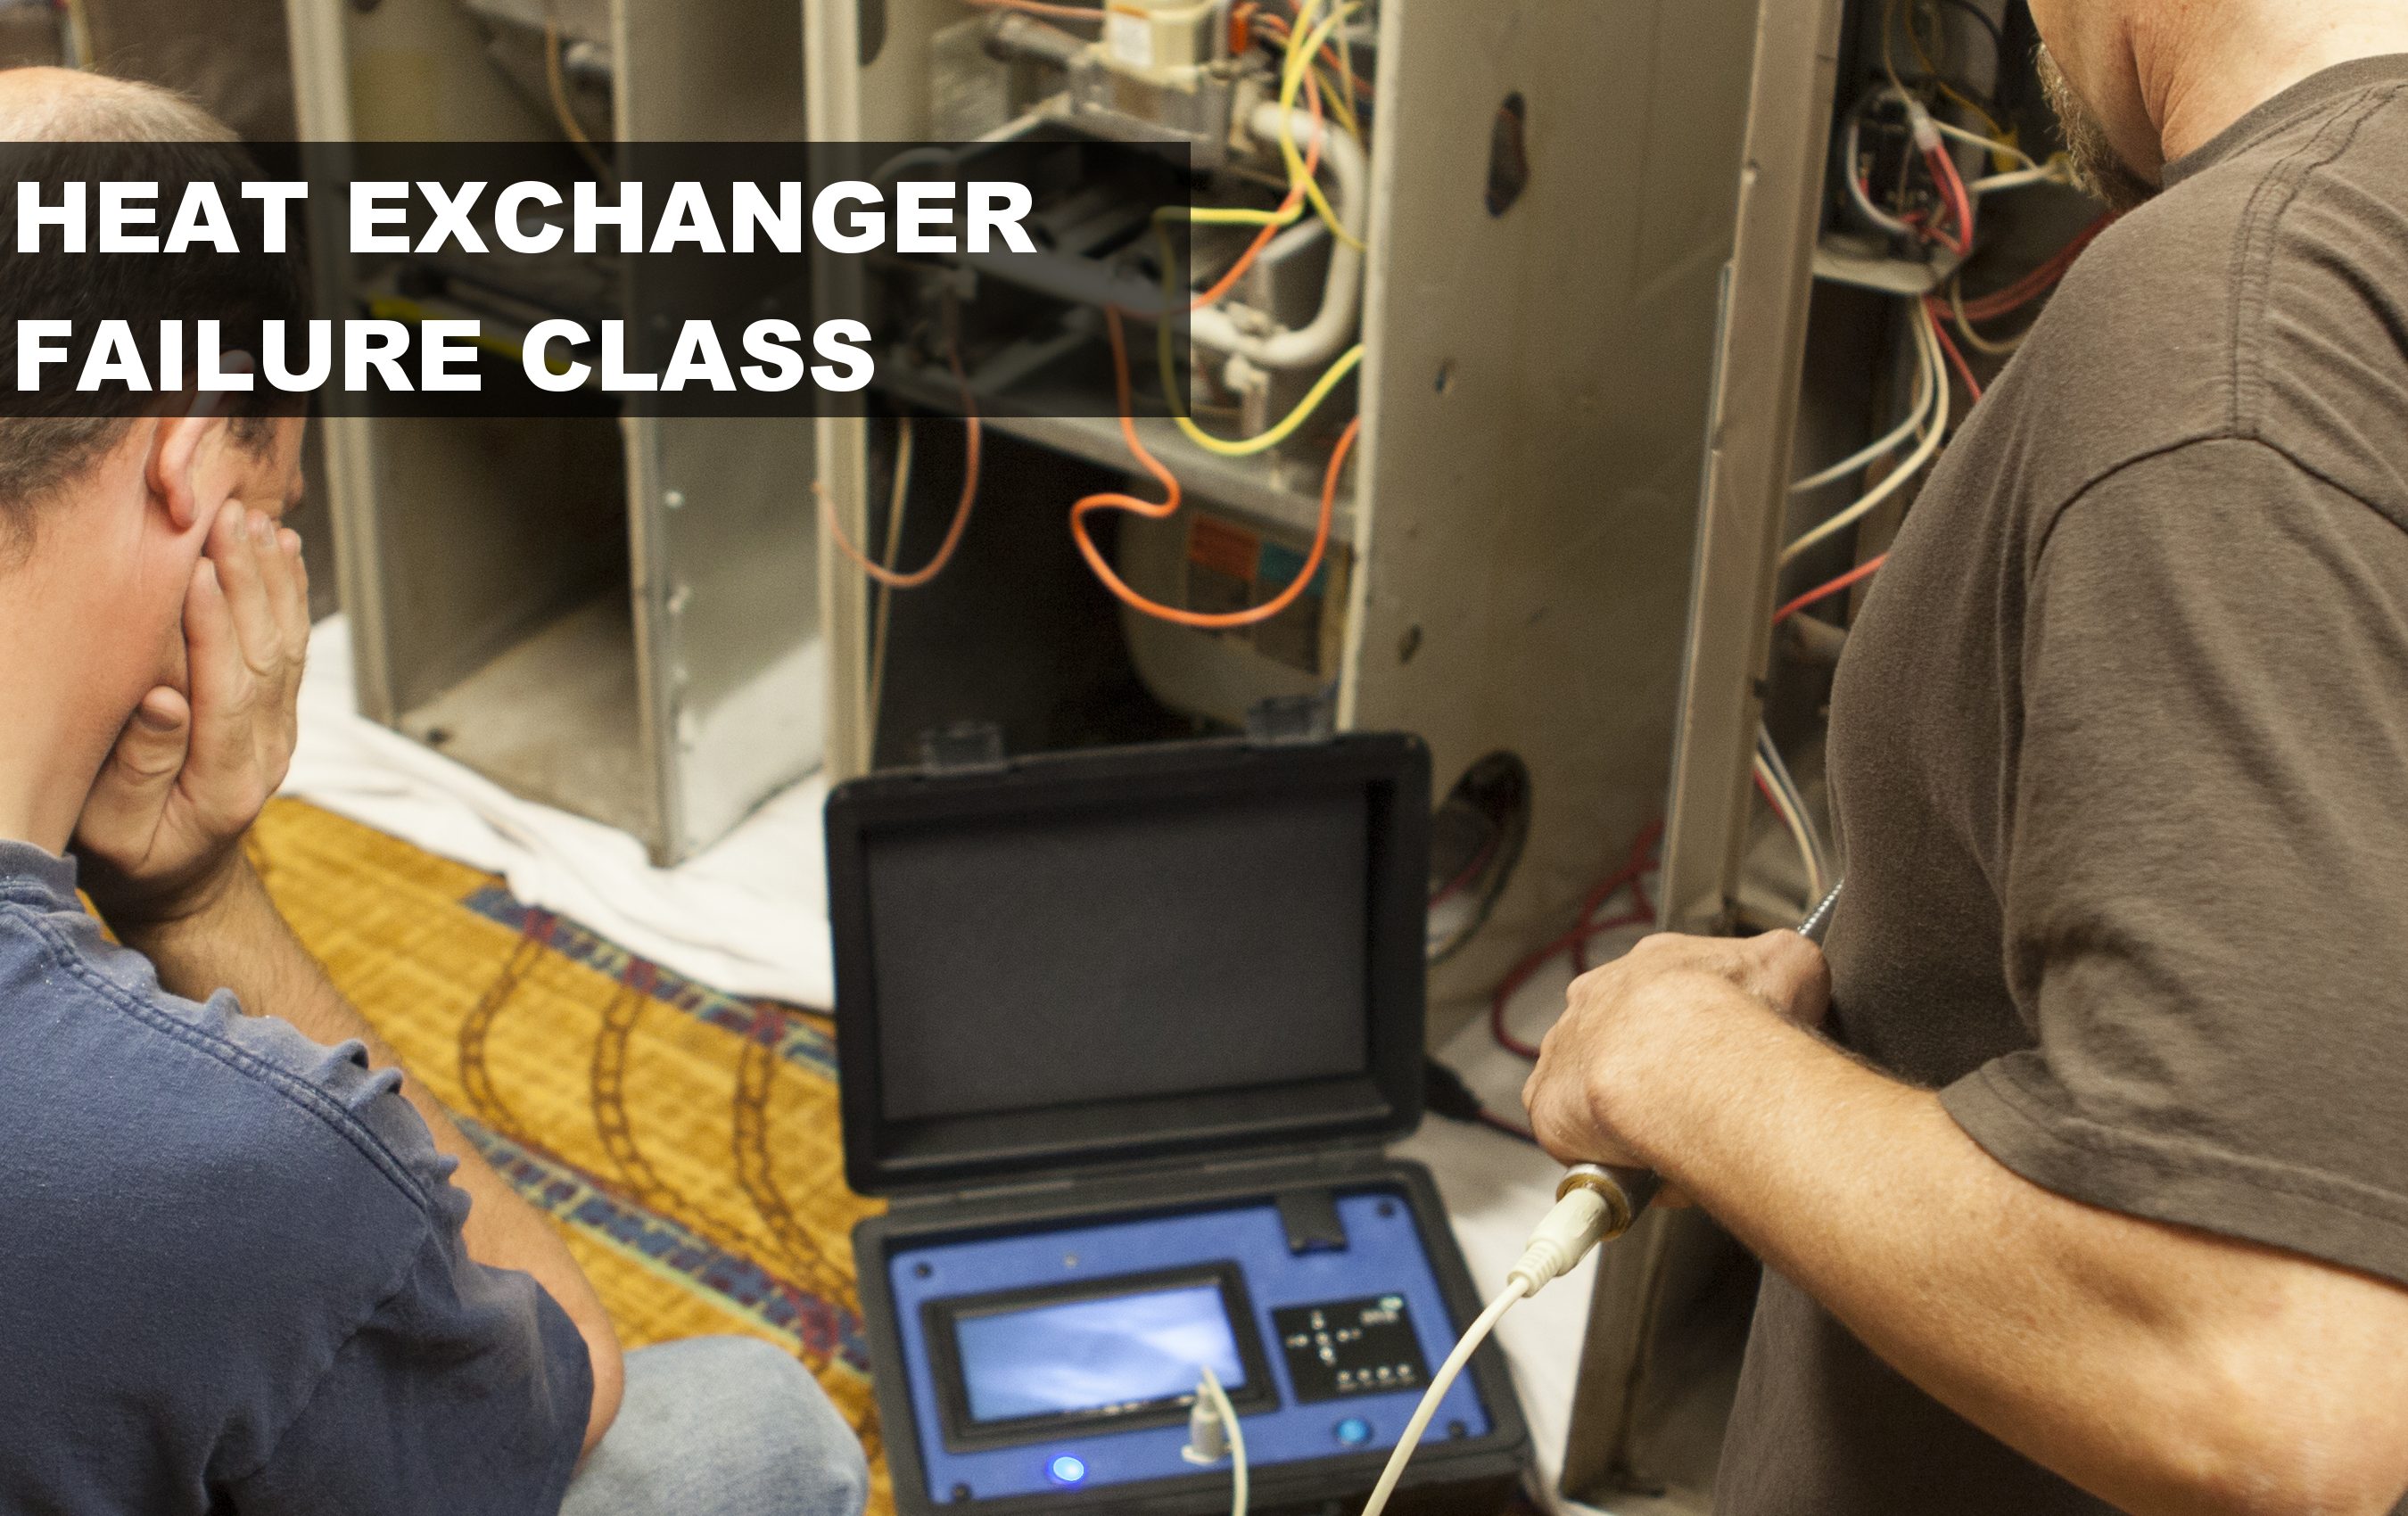 HEAT EXCHANGER FAILURE CLASS